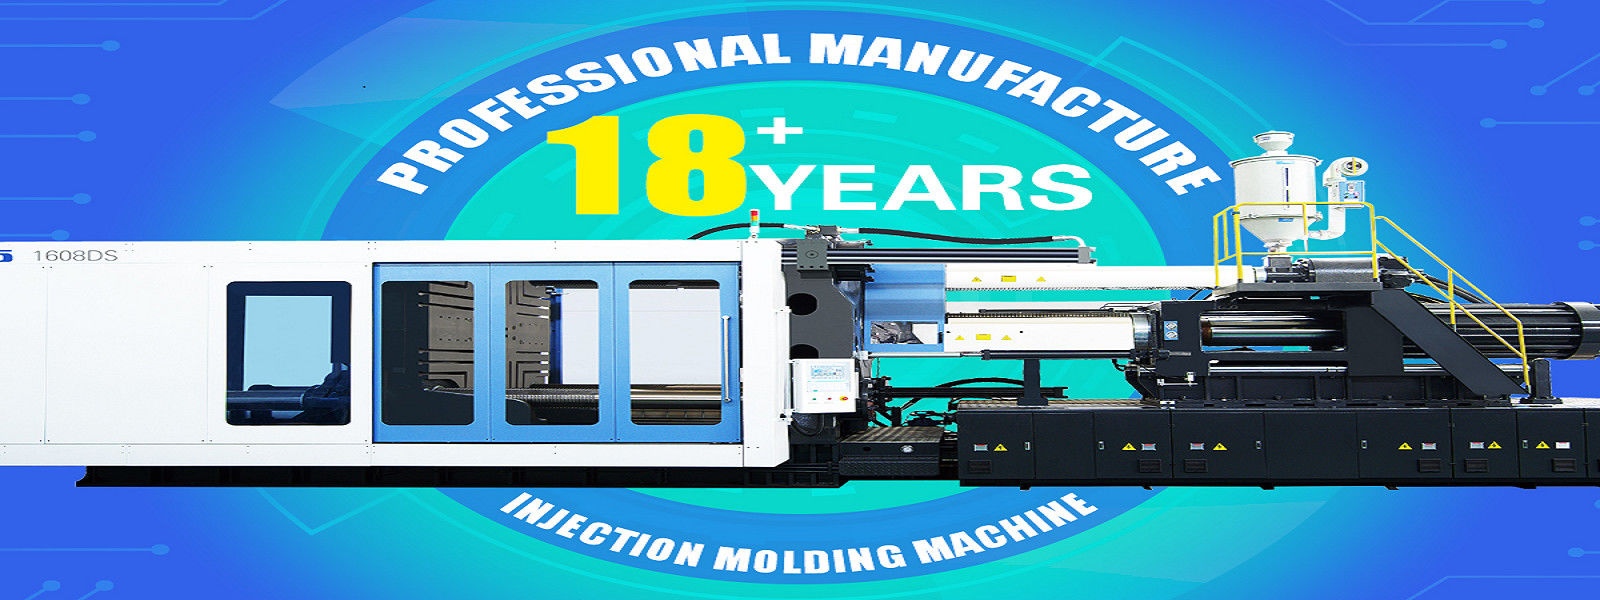 Plastik Injection Molding Mesin